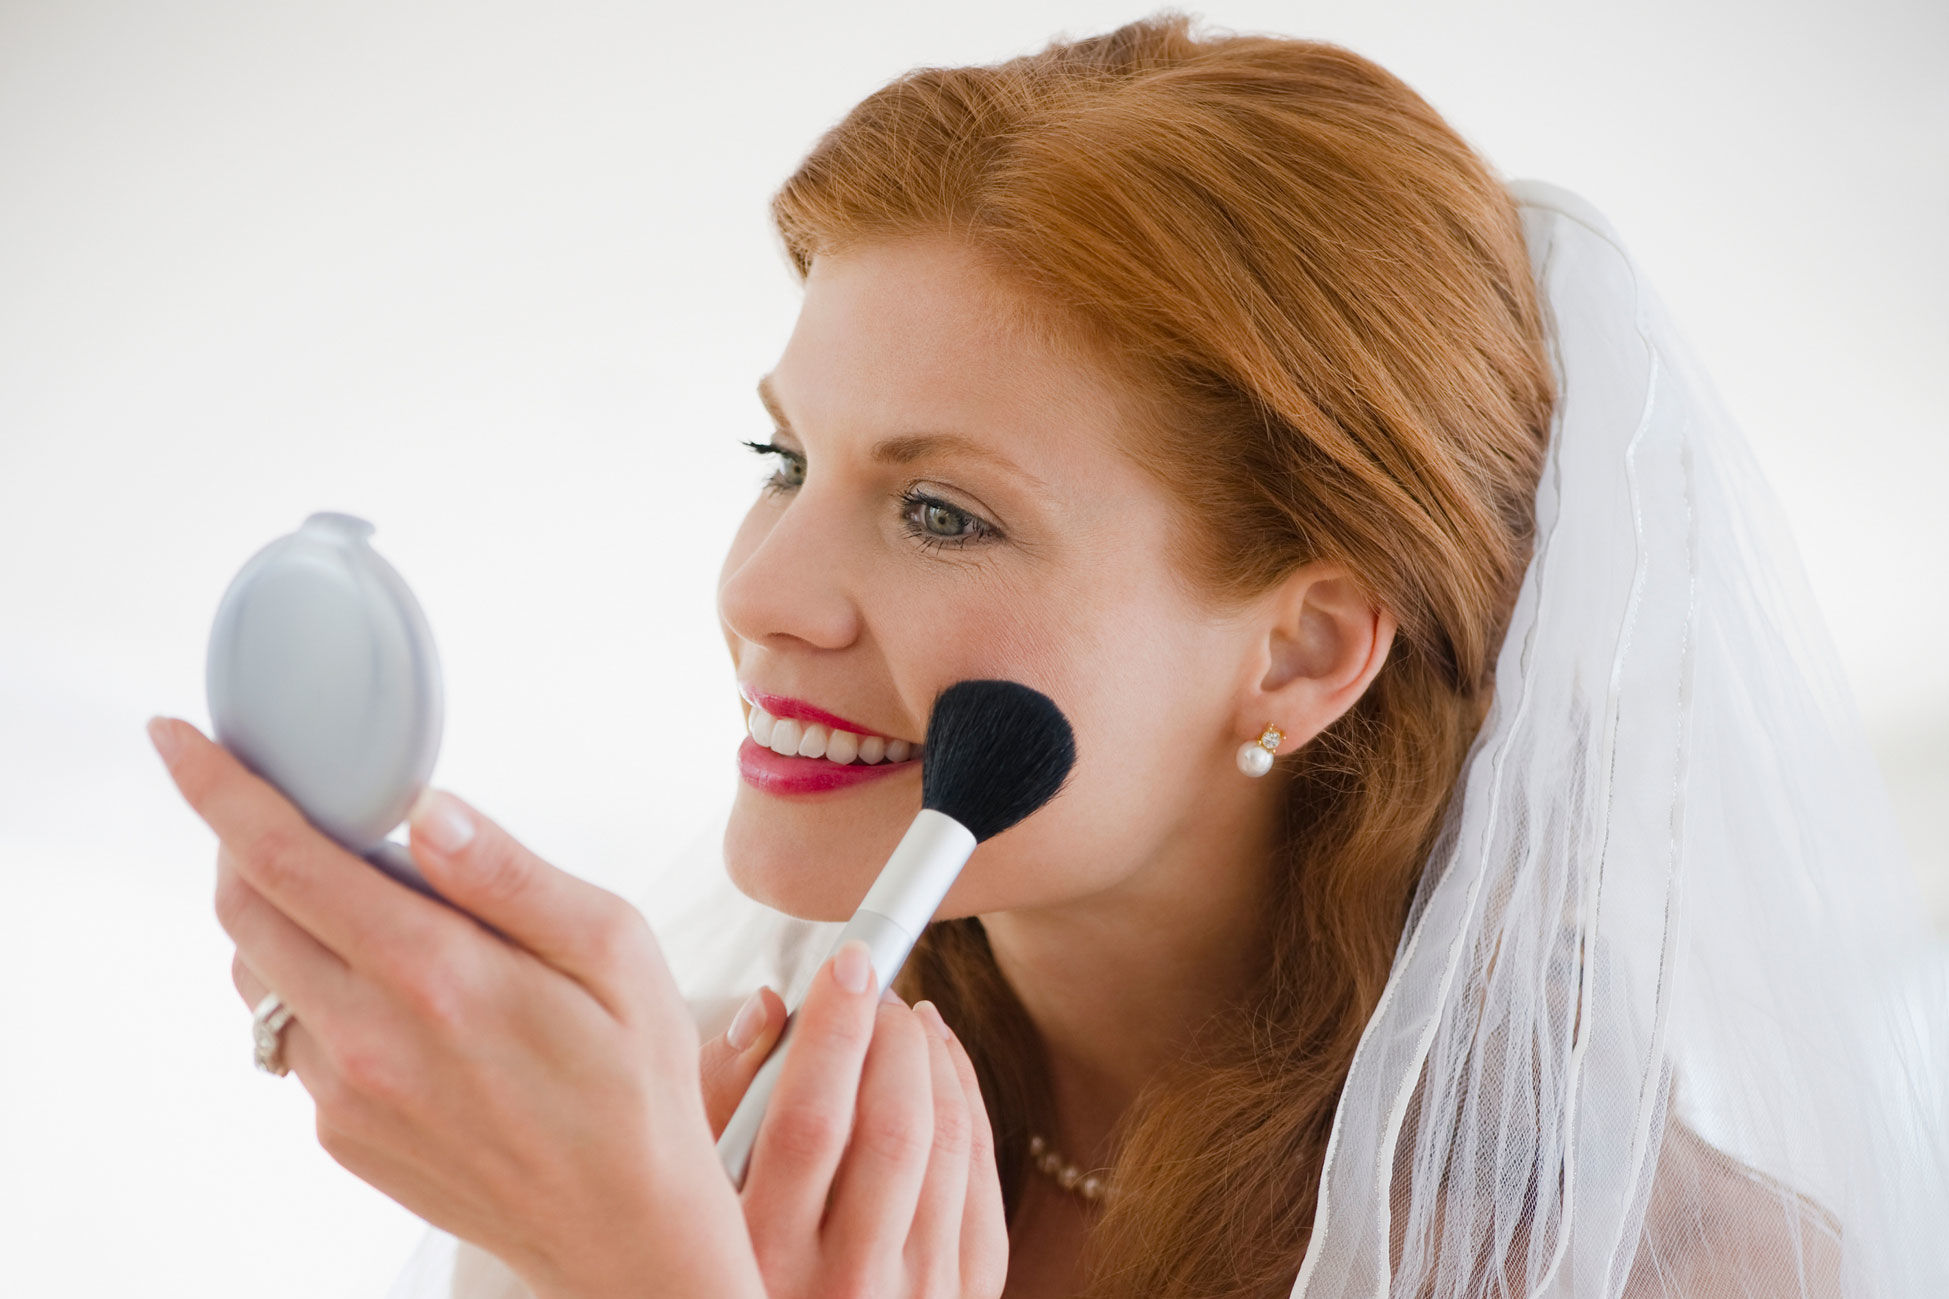 7 Wedding Day Makeup Mishaps and How to Fix Them